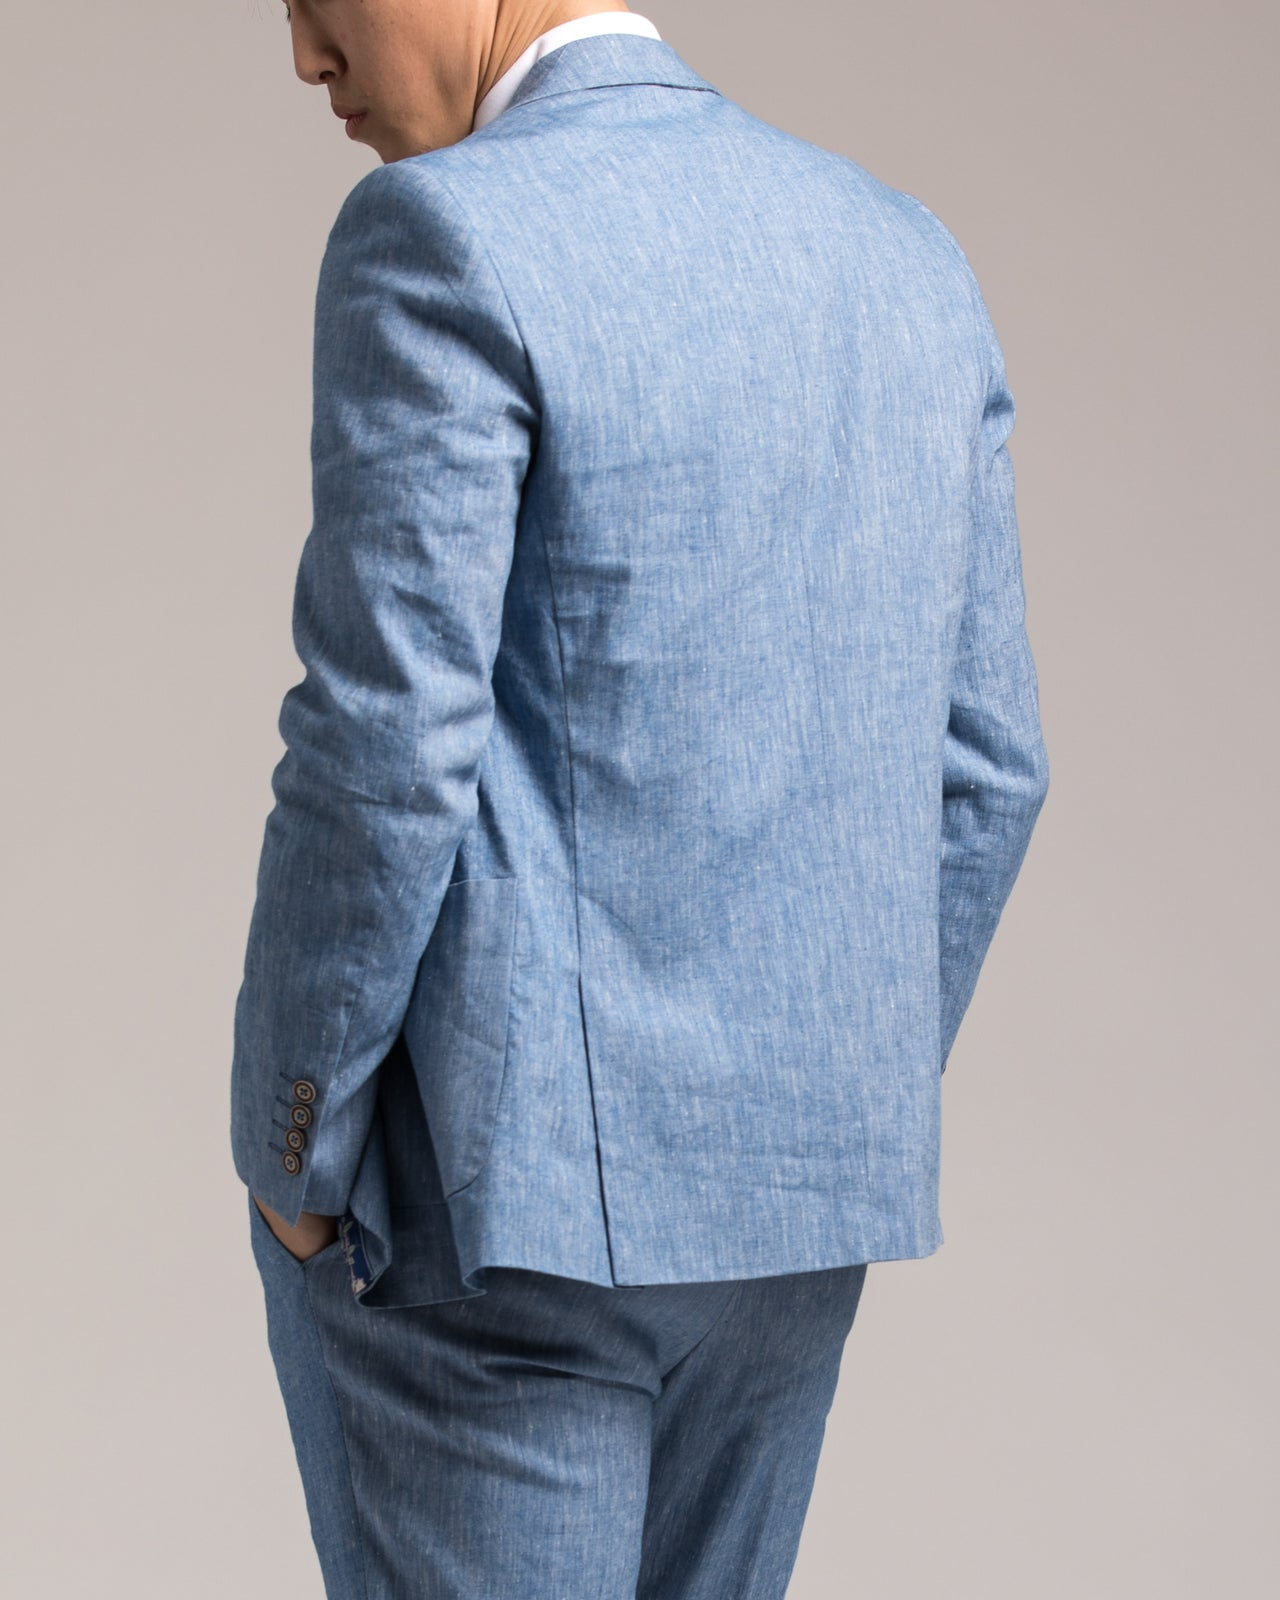 Dover Notch Jacket - Color: Light Blue Chambray | Blue